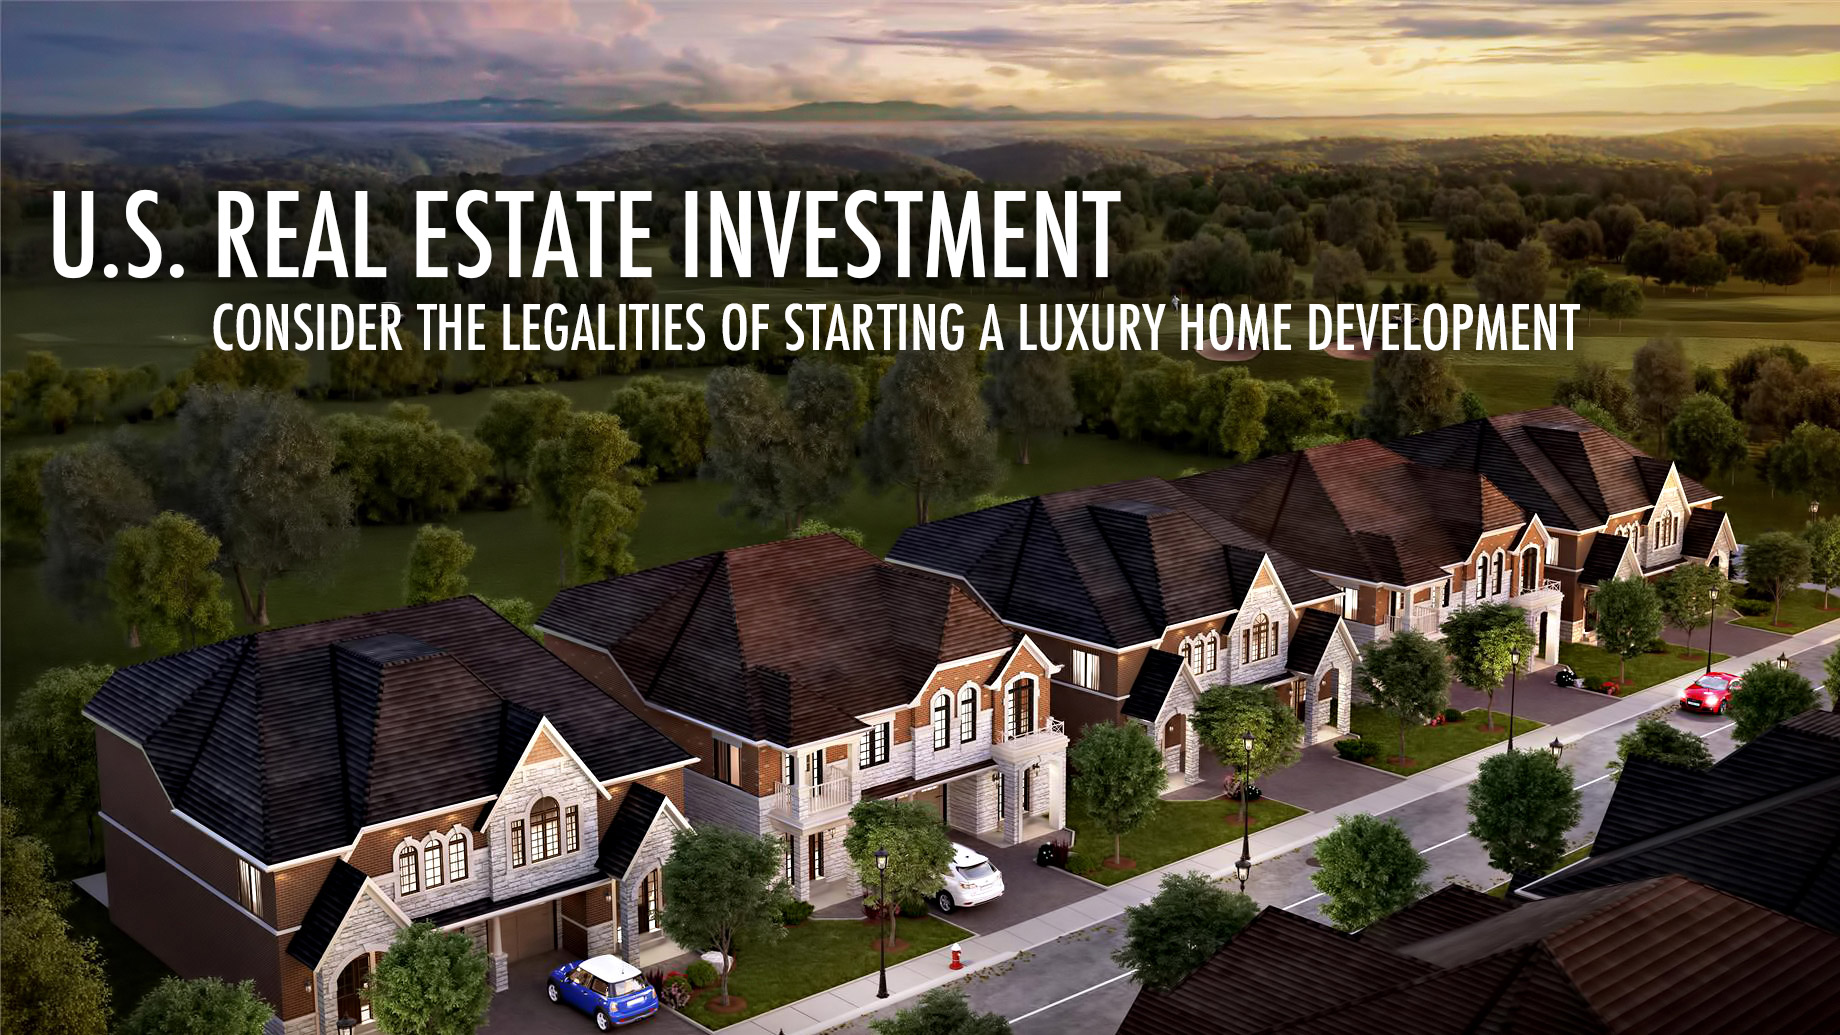 U.S. Real Estate Investment - Consider the Legalities of Starting a Luxury Home Development